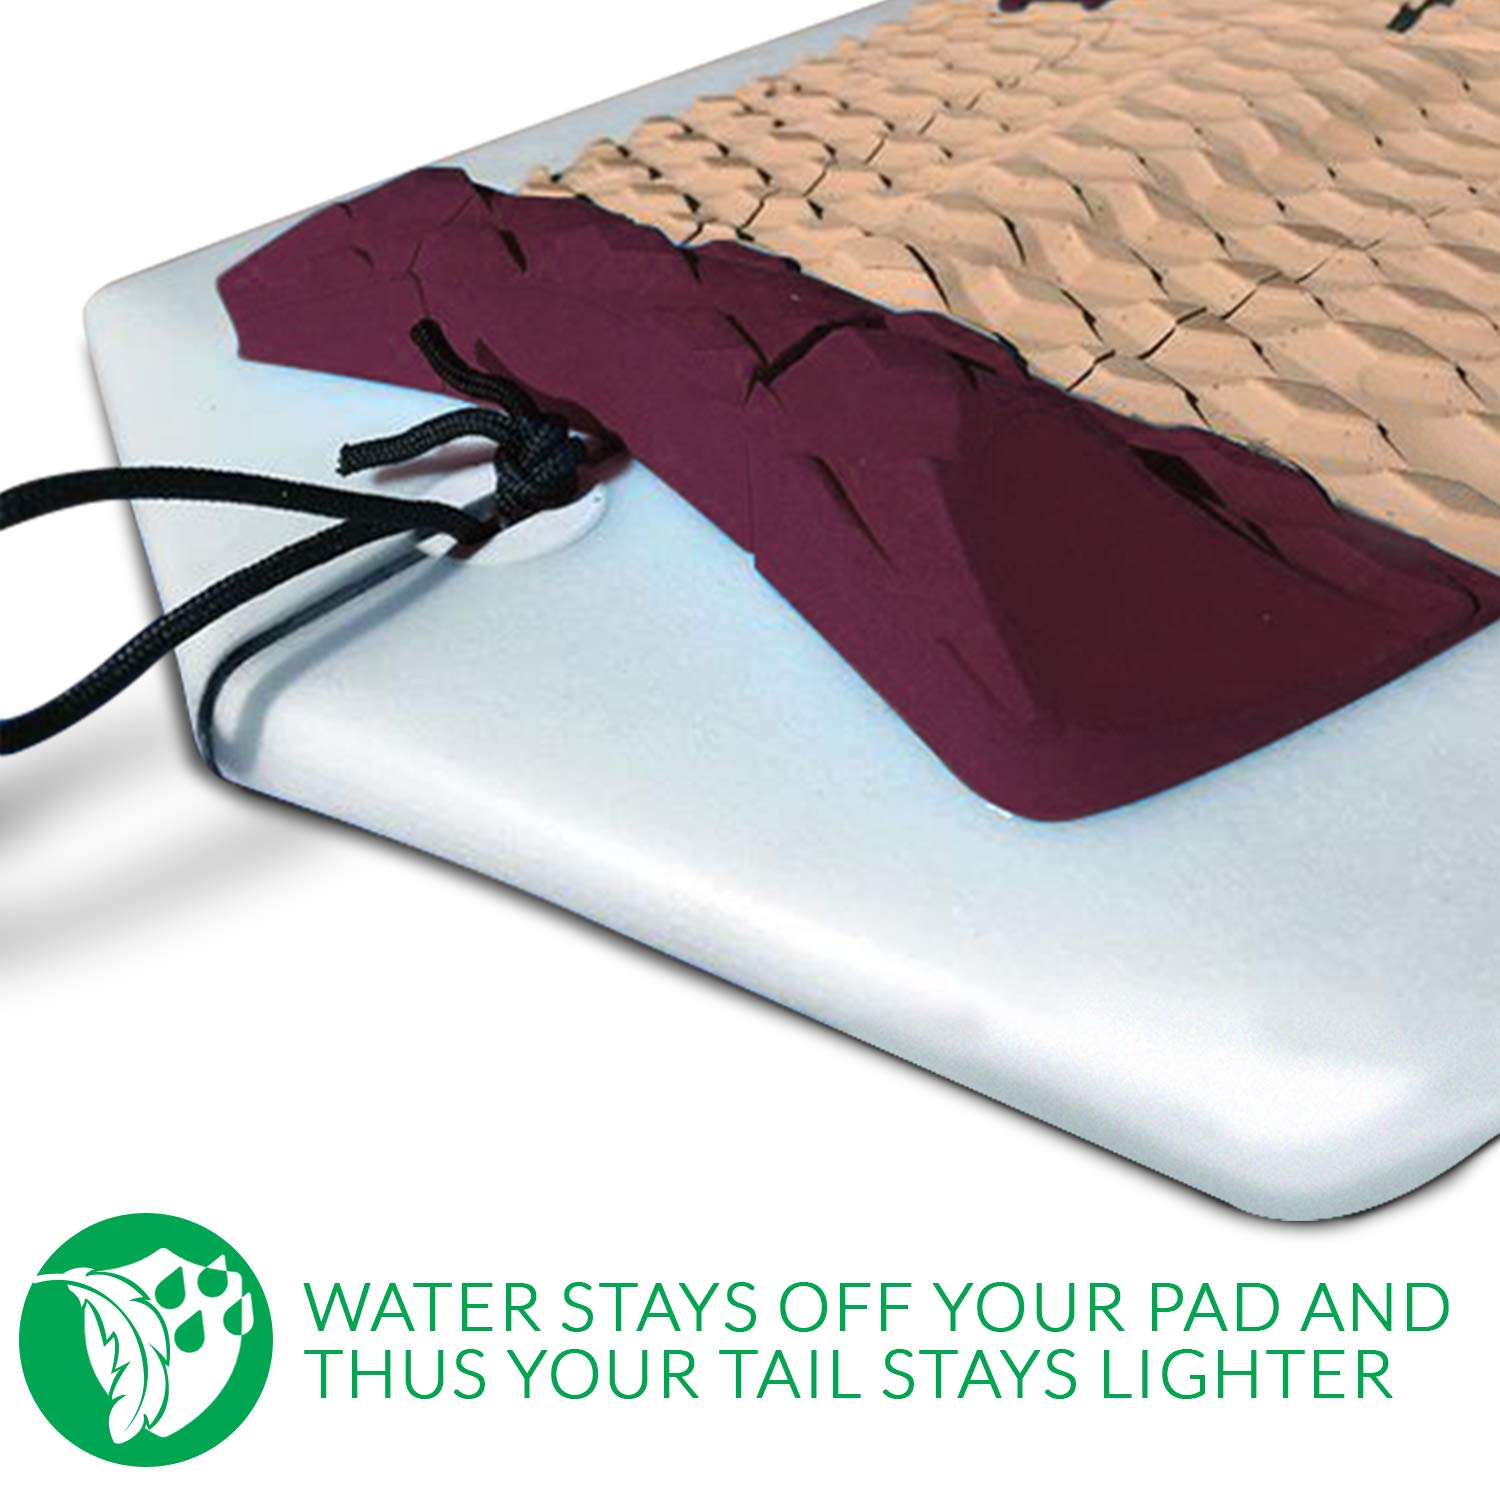 Eco Deck Pad Wave Tribe Cork Surfboard Traction Pad Better for Planet Soft of Knees Great Grip /& Stomp